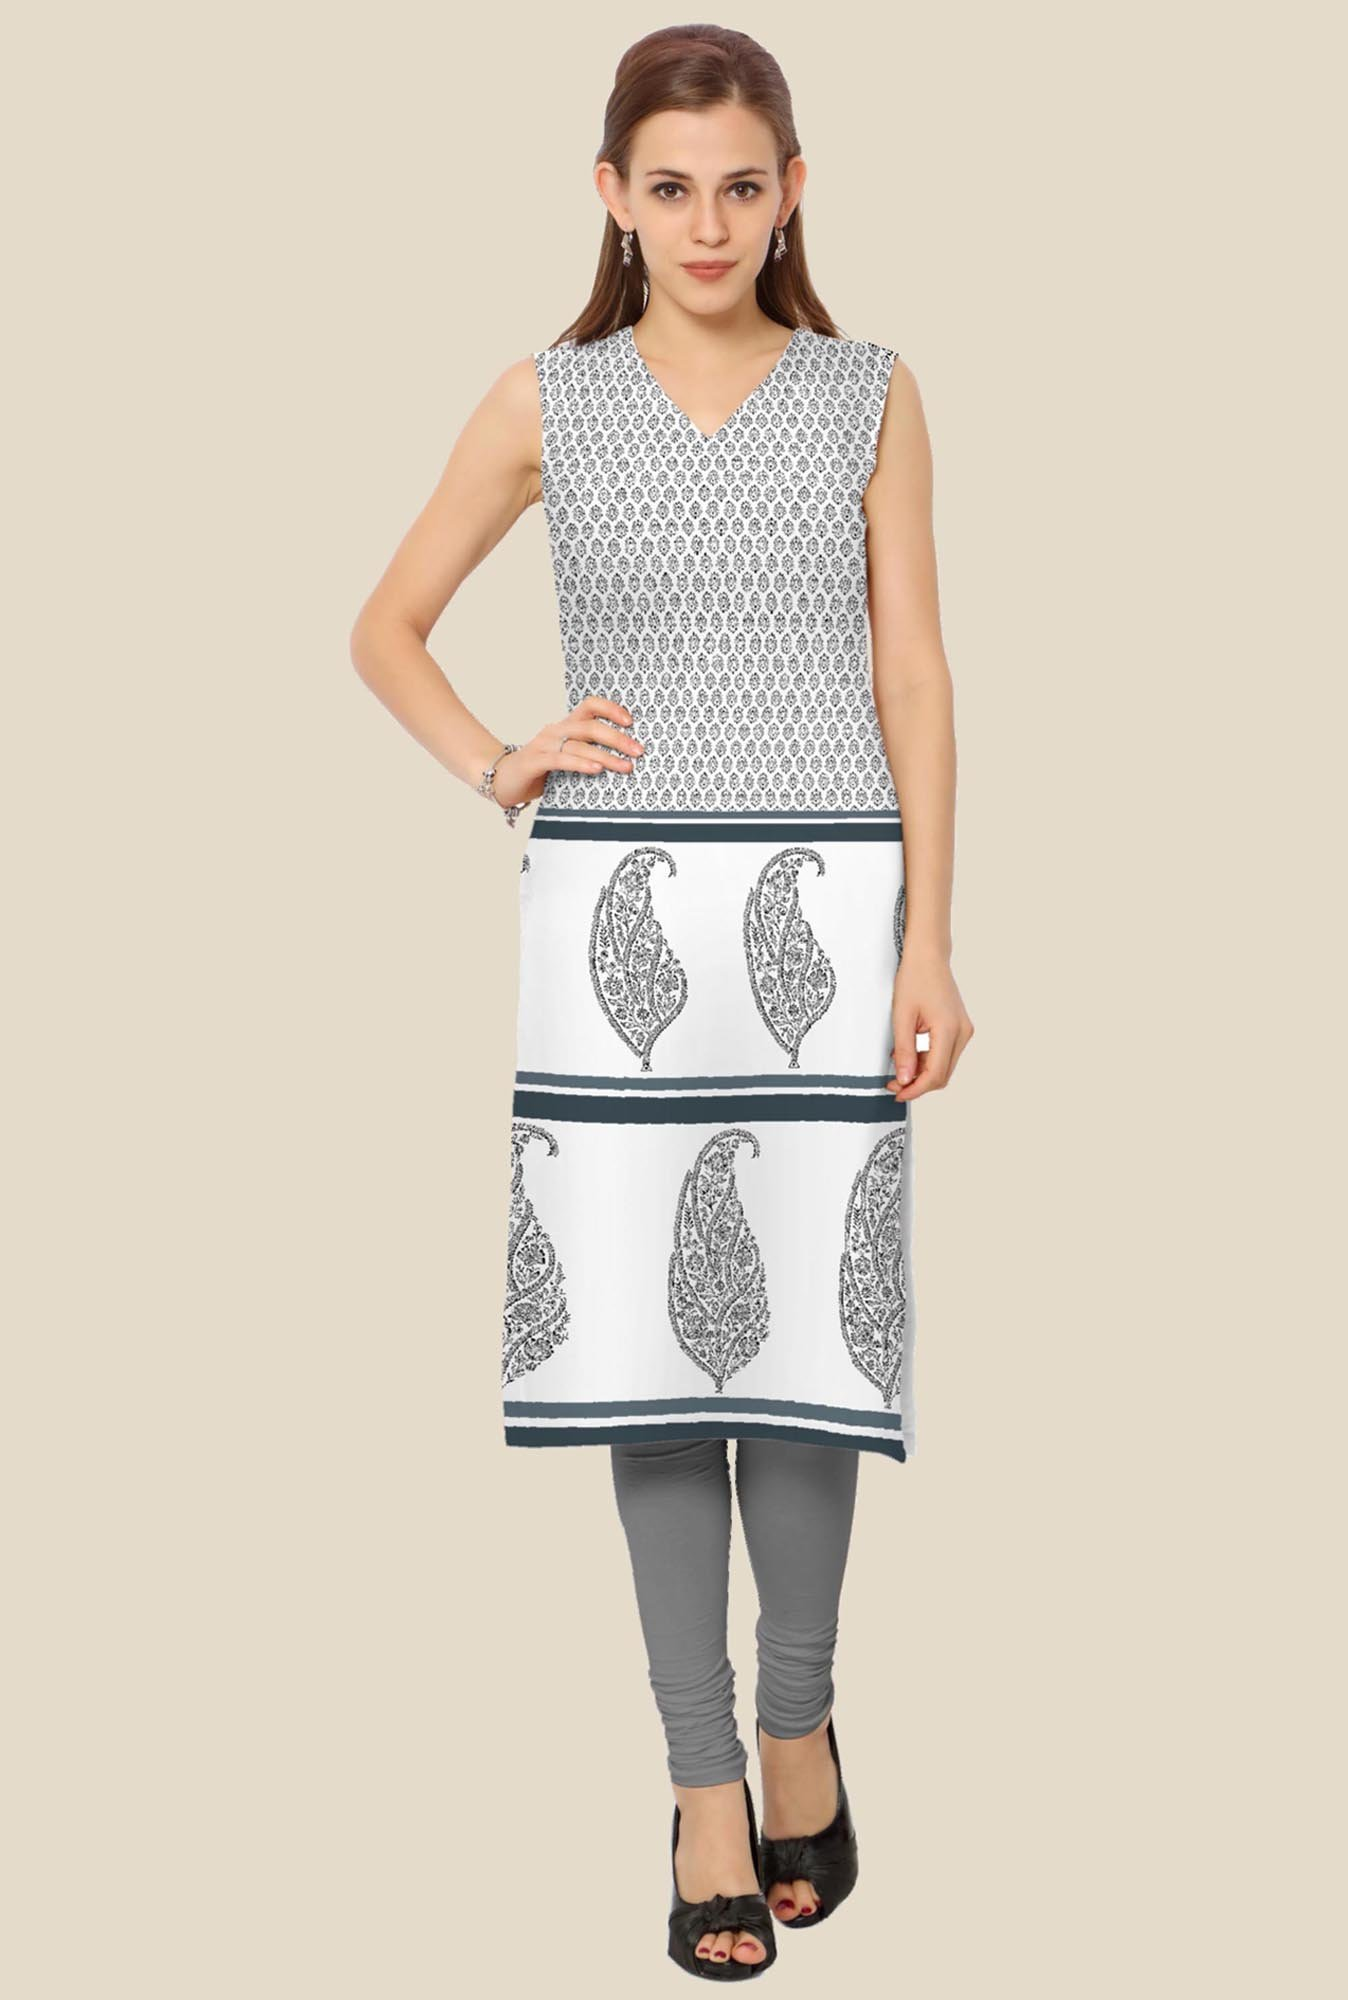 Ahalyaa White & Grey Printed Kurta